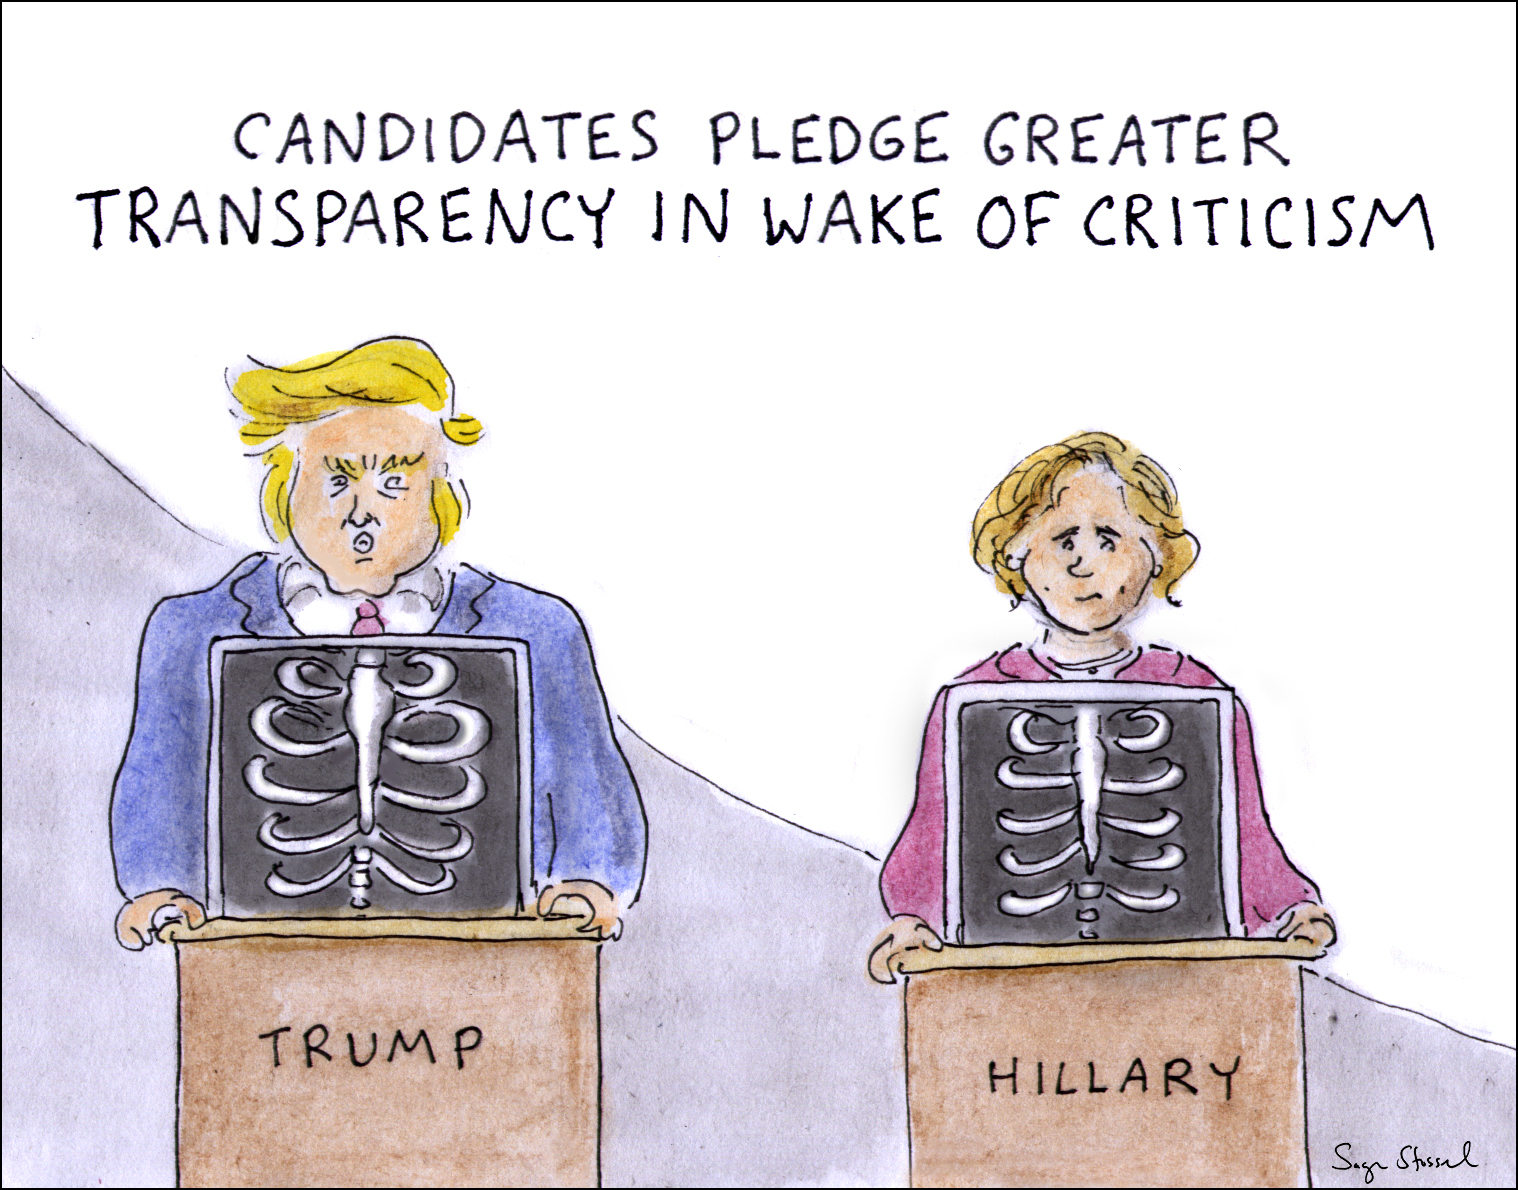 hillary faint, pneumonia, 9/11 memorial, coughing, trump doctor, lisa bardach, 2016 campaign, candidate health, seizures, cartoon